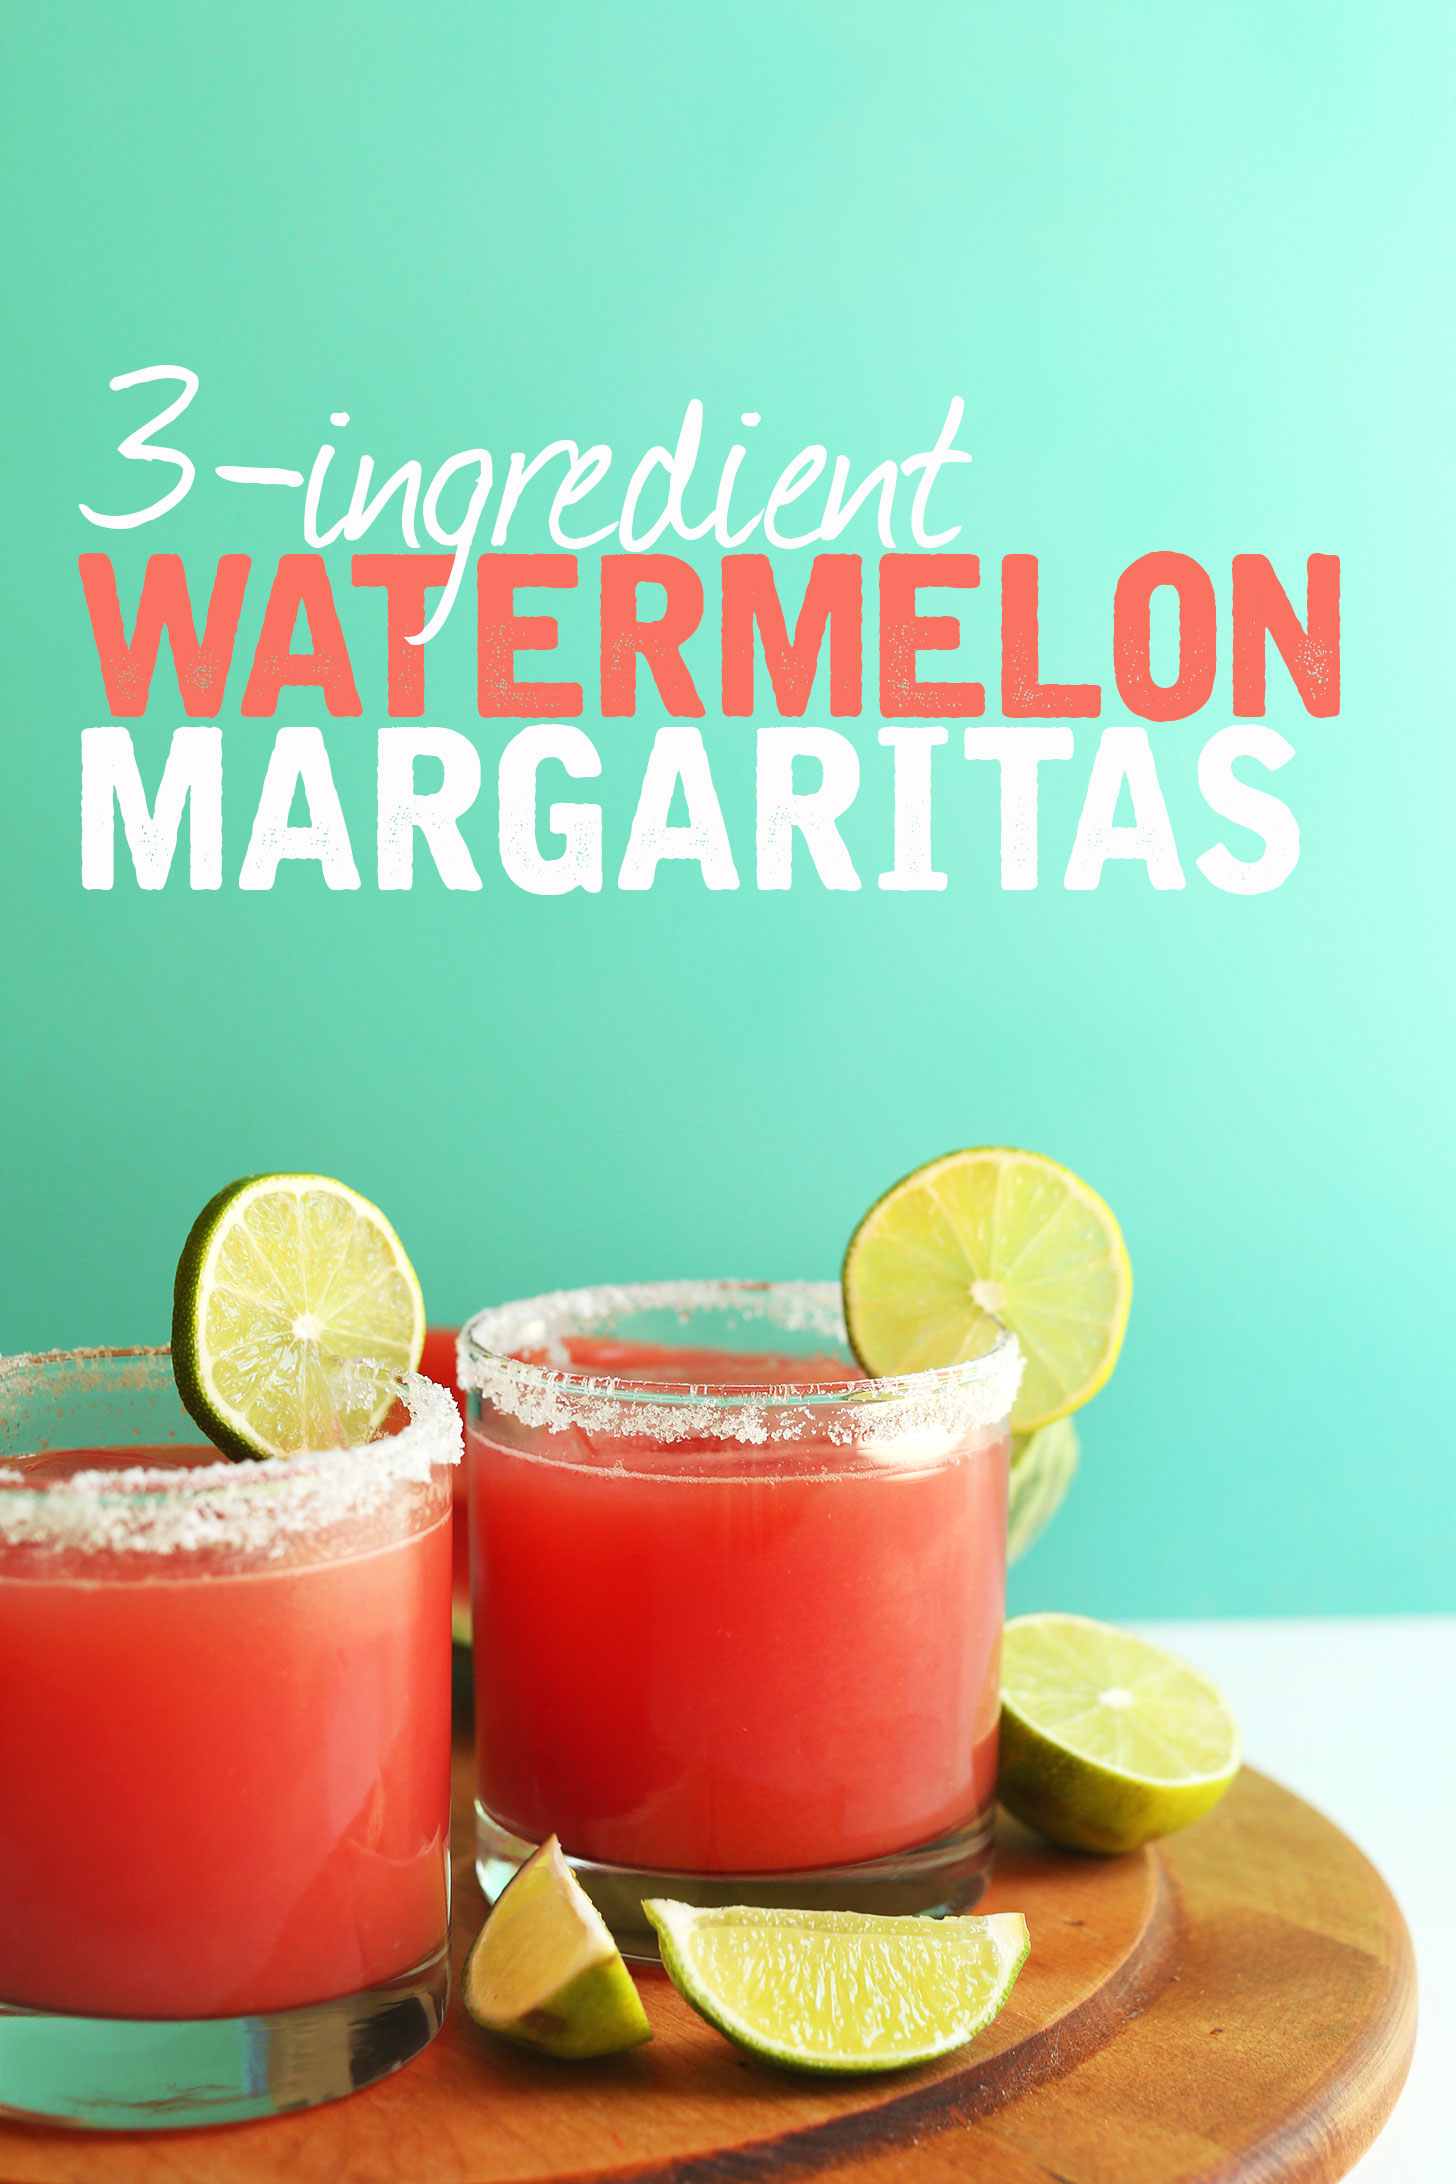 THE BEST Watermelon Margarita | 3 ingredients! #vegan #margarita #watermelon #recipe #easy #drinks #minimalistbaker